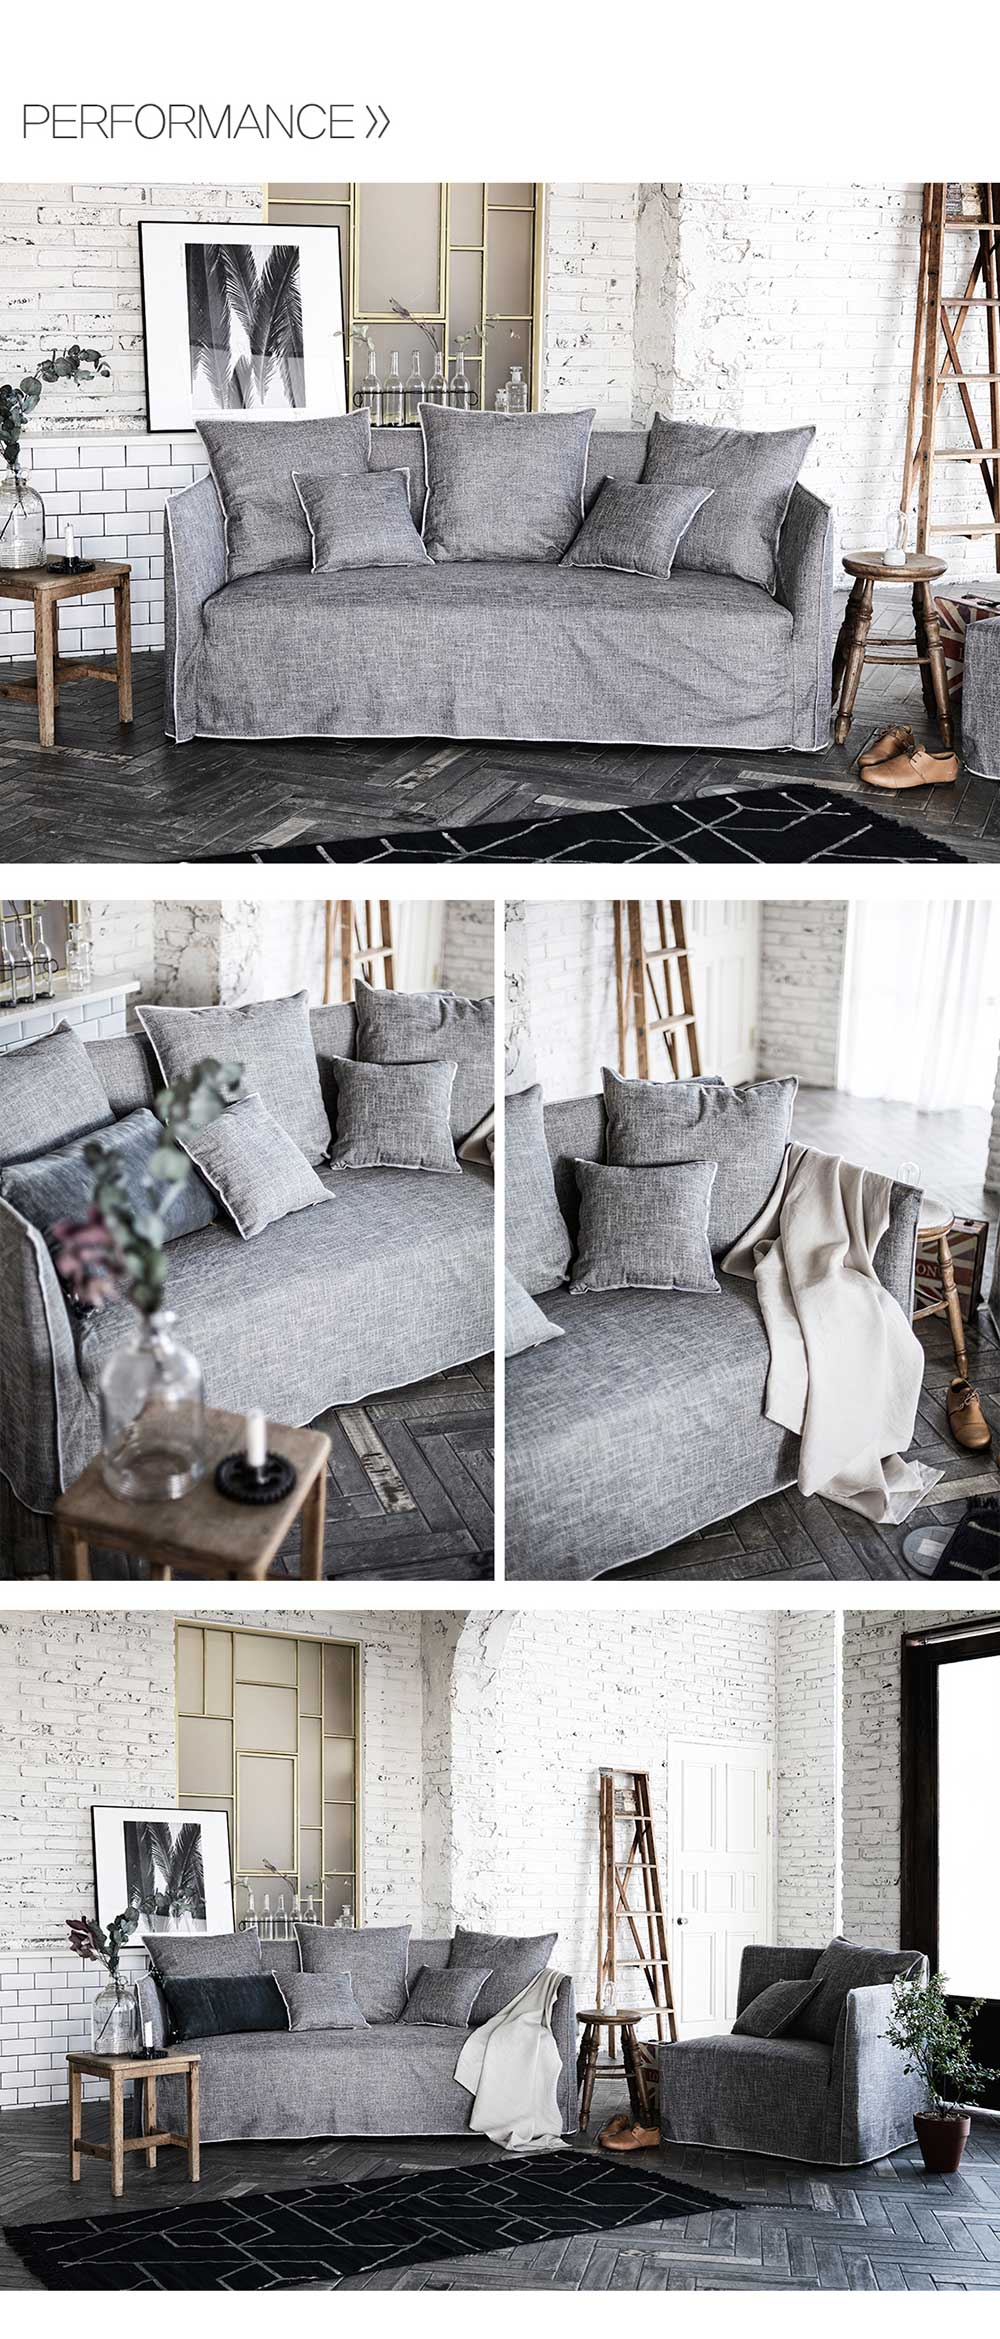 Londoner_Kinfolk_Industrial_Sofa_(White Black)_Singapore_Online_Singapore_Performance_1_by_born_in_colour